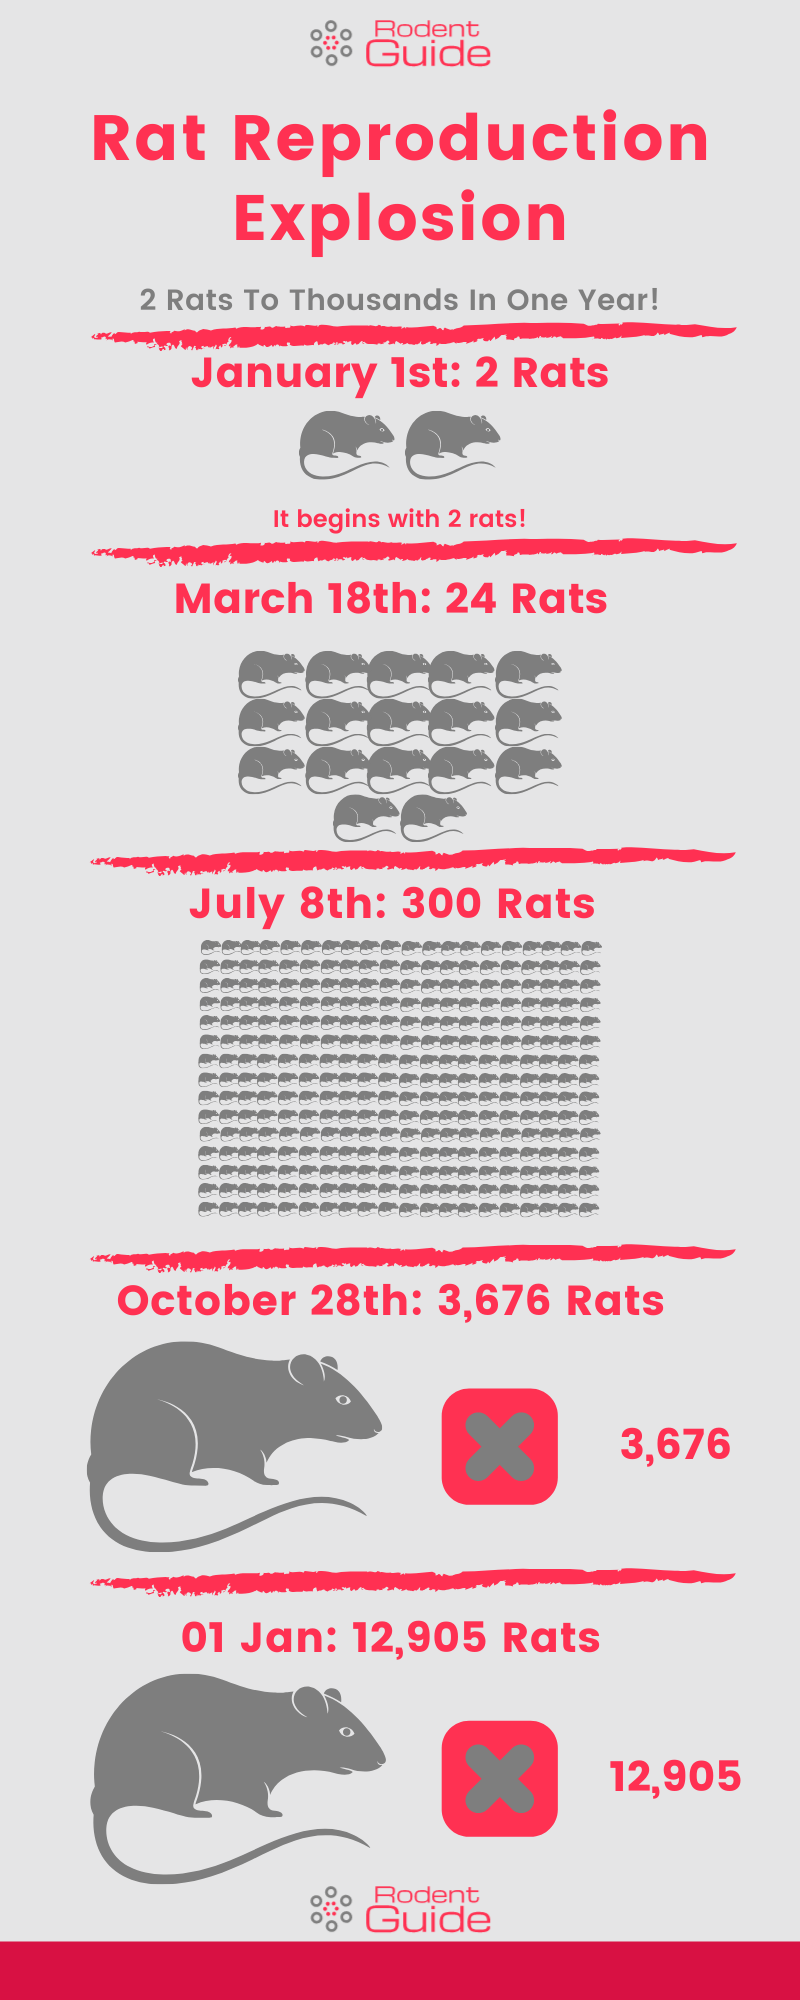 Rat Reproduction Explosion Infographic